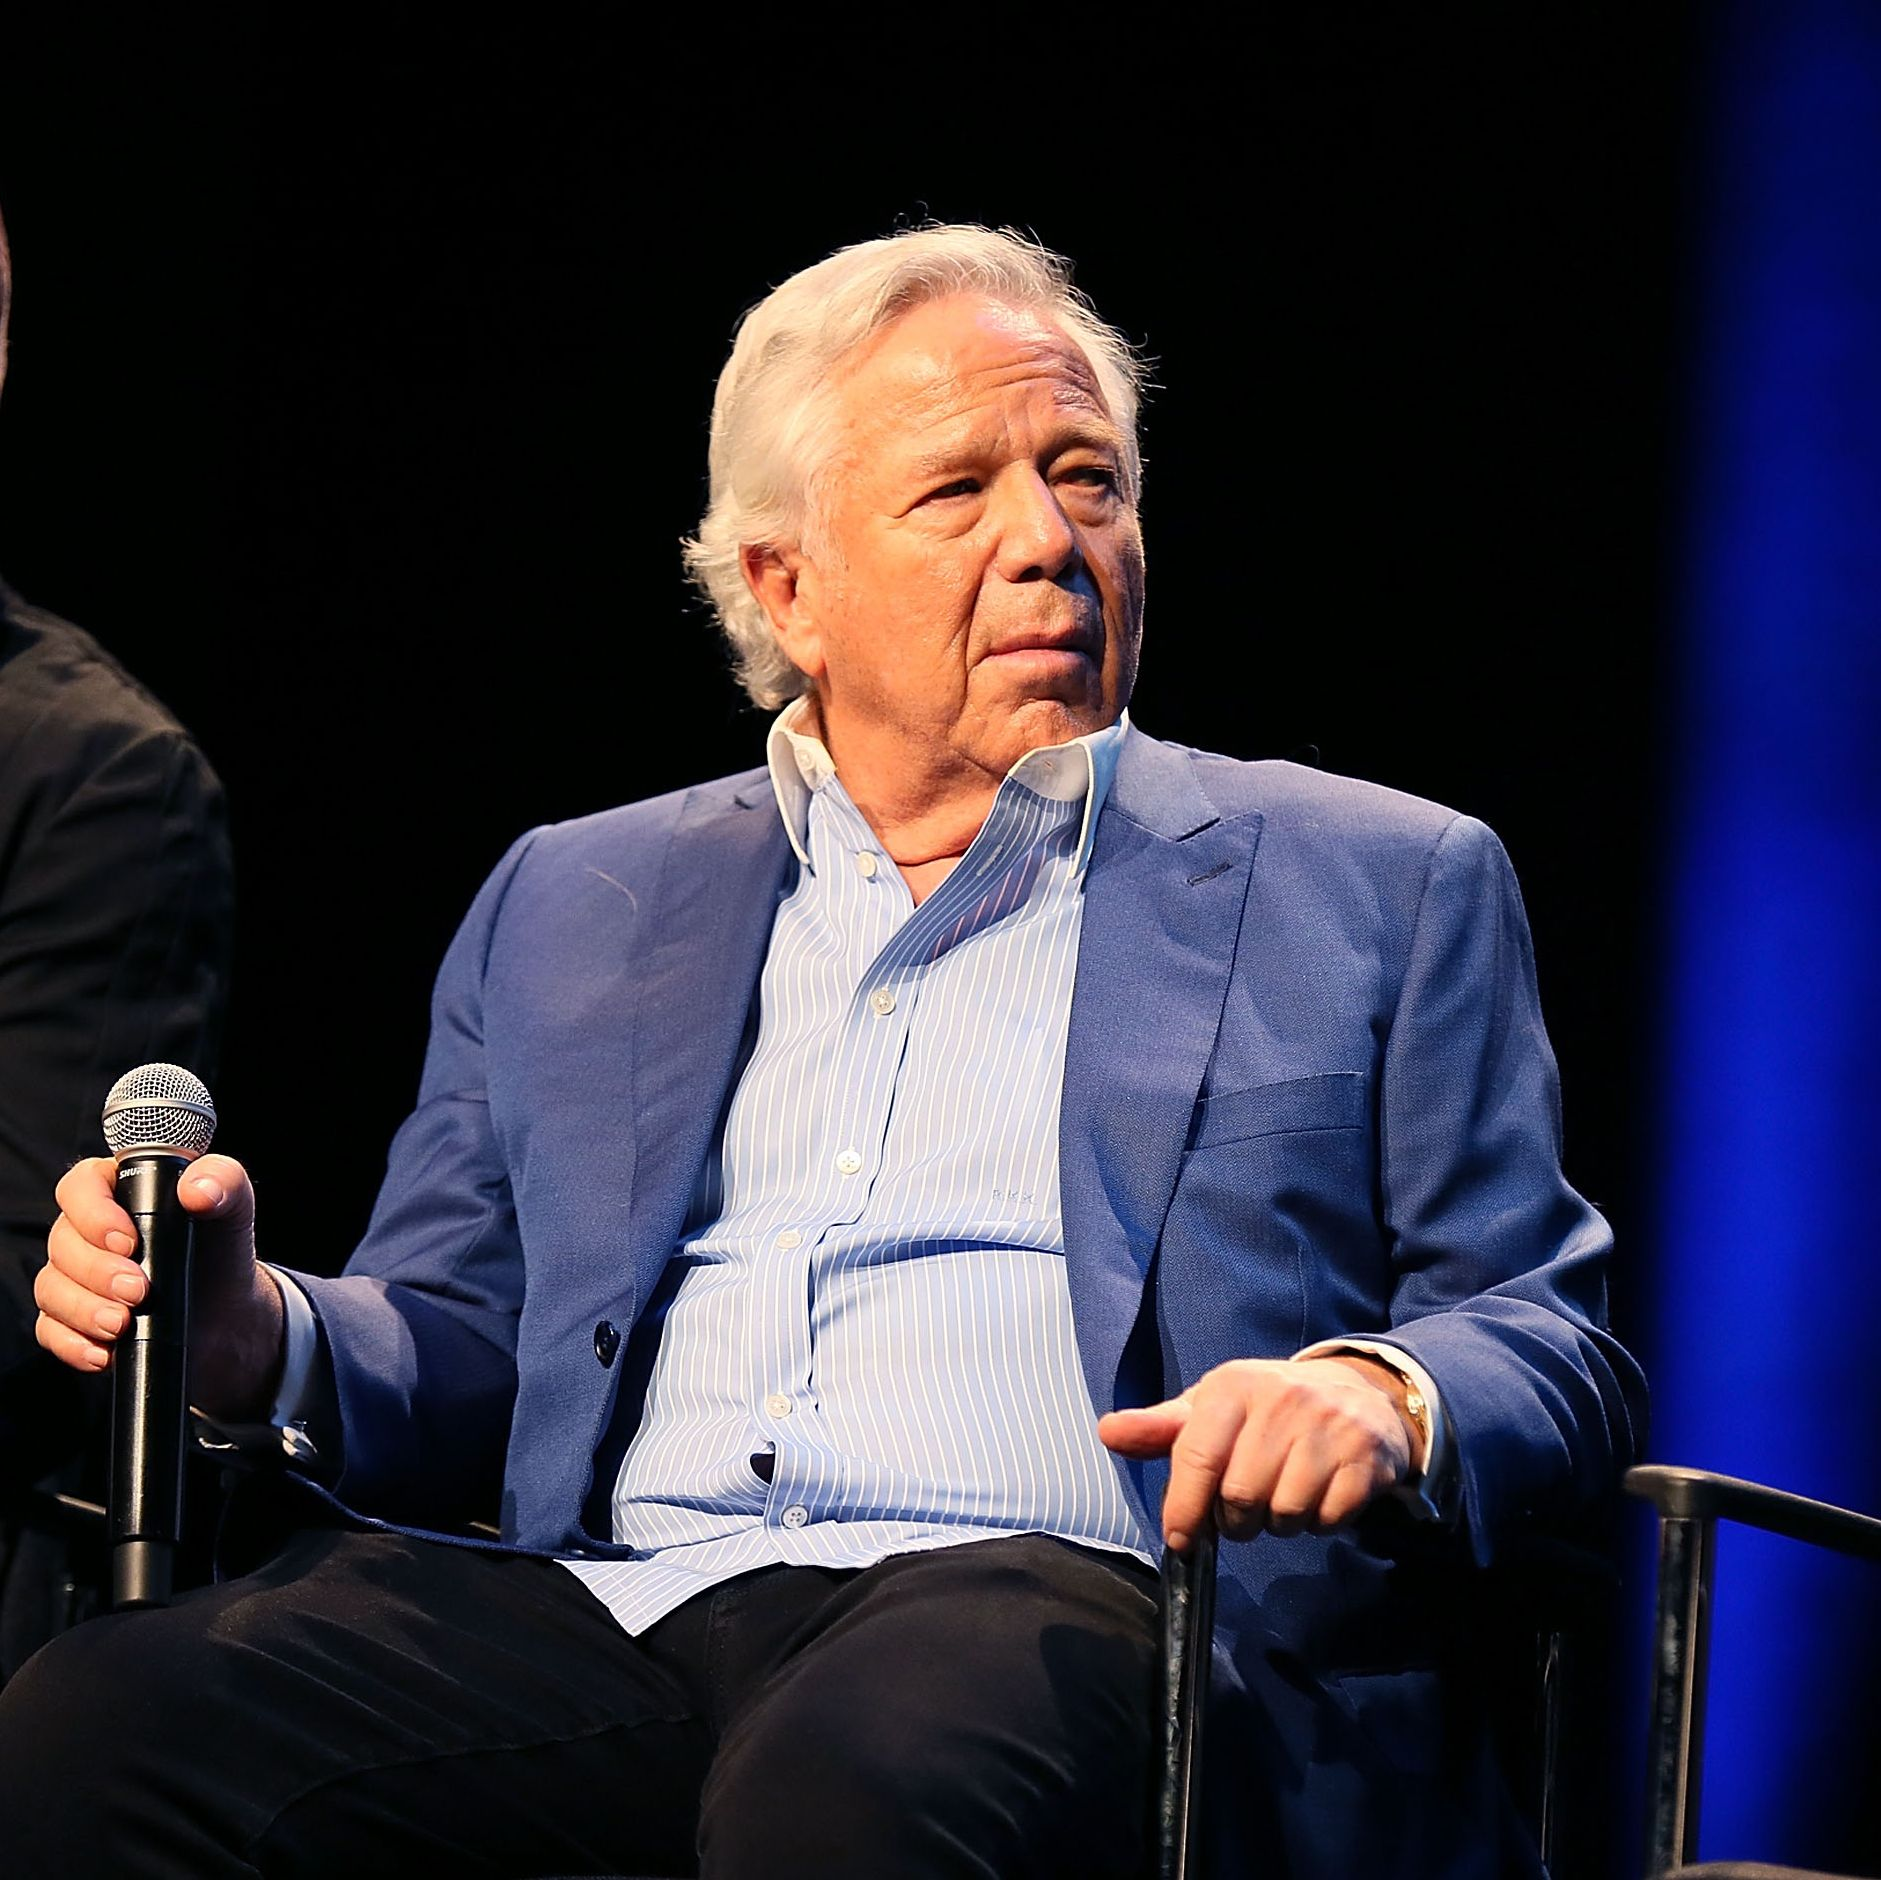 Don't Let the Robert Kraft Charges Derail the Importance of Criminal Justice Reform